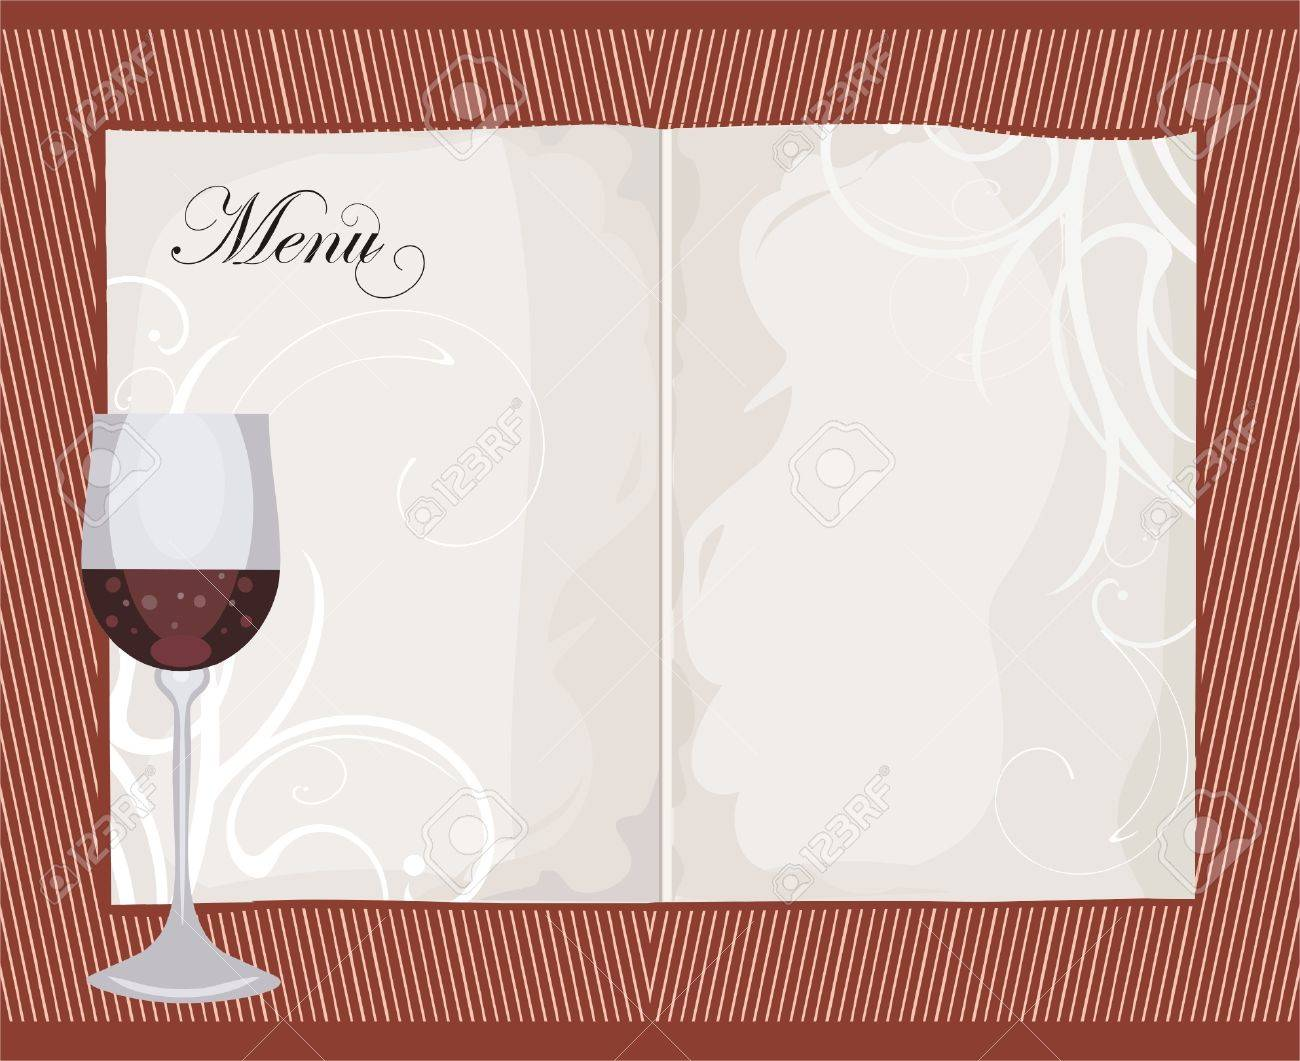 Menu template with galss of wine royalty free cliparts vectors menu template with galss of wine stock vector 7008870 pronofoot35fo Gallery